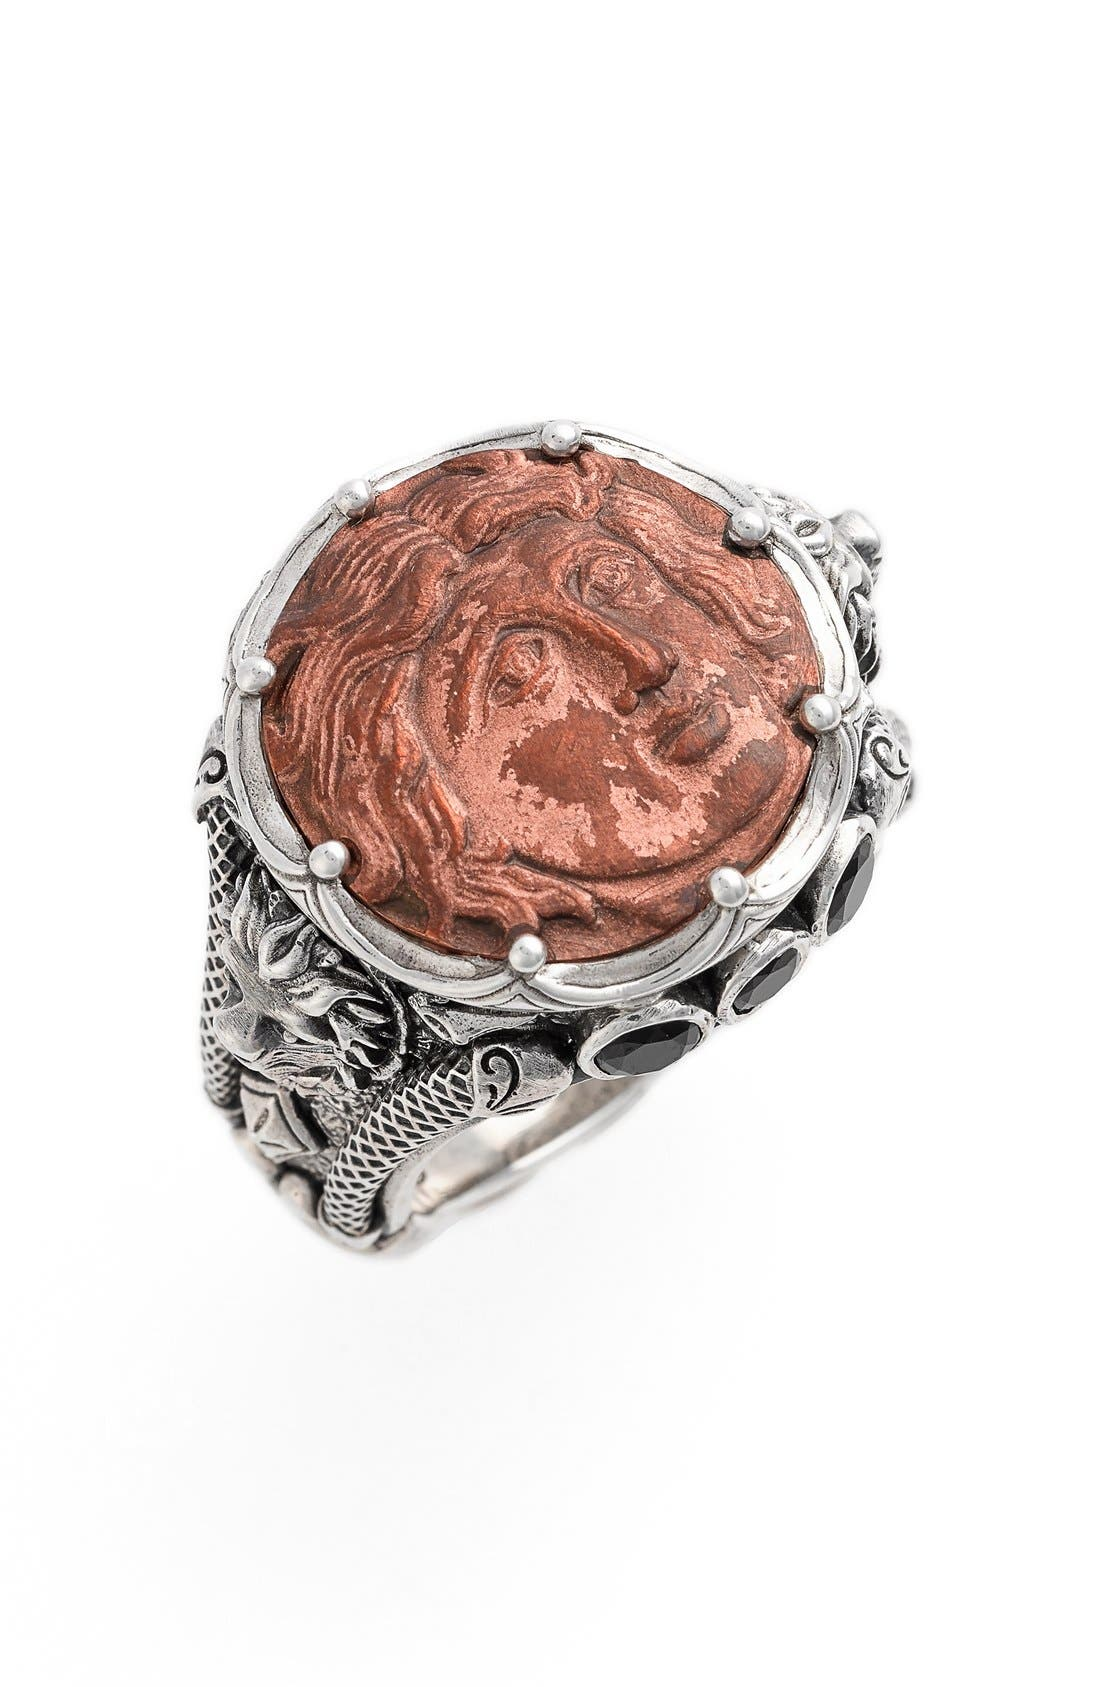 'Aeolous' Greek Coin Ring,                             Main thumbnail 1, color,                             Copper/ Silver